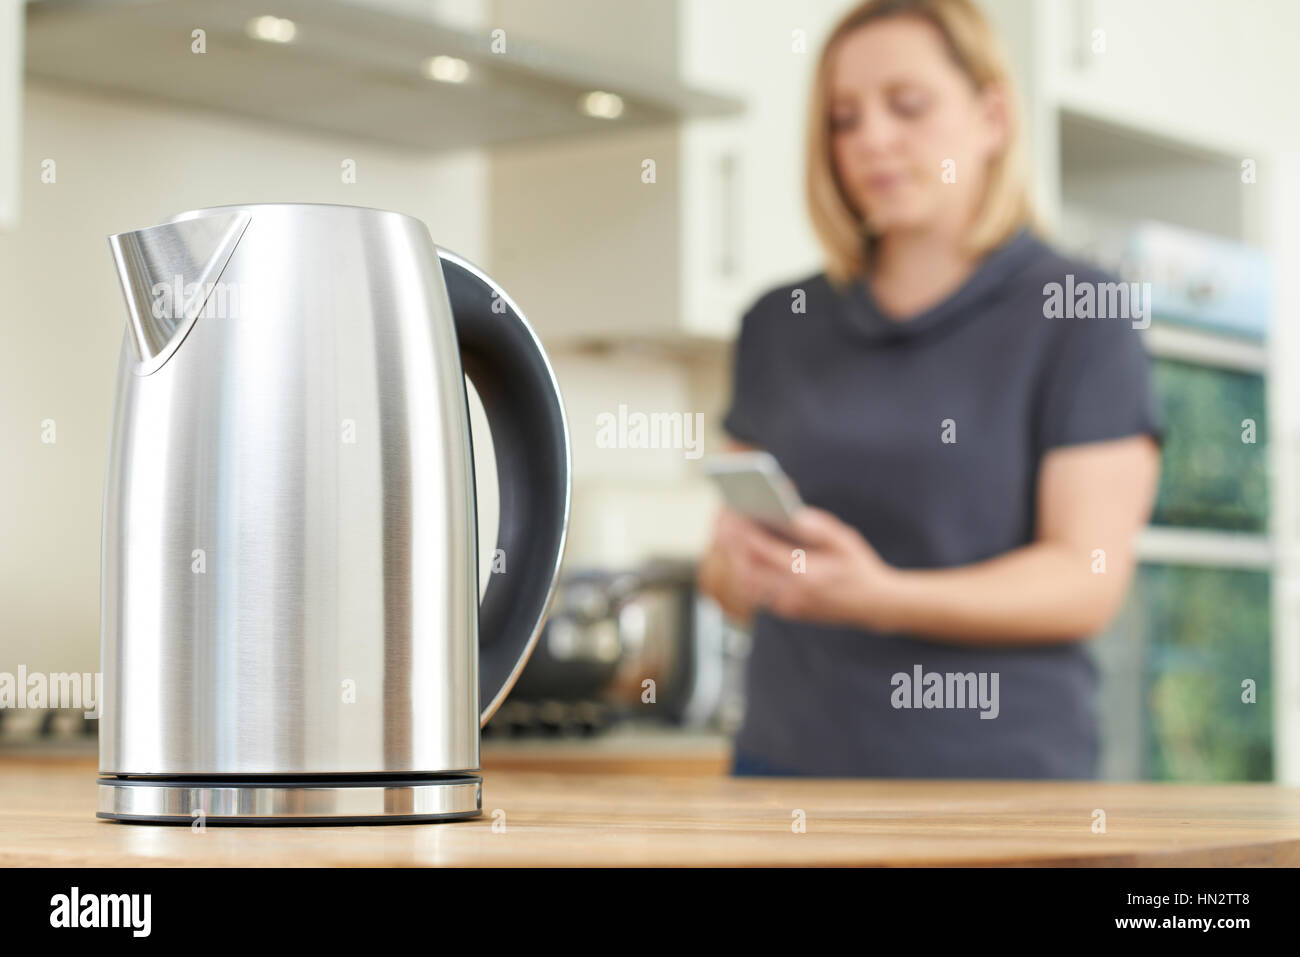 Woman Controlling Smart Kettle Using App On Mobile Phone - Stock Image